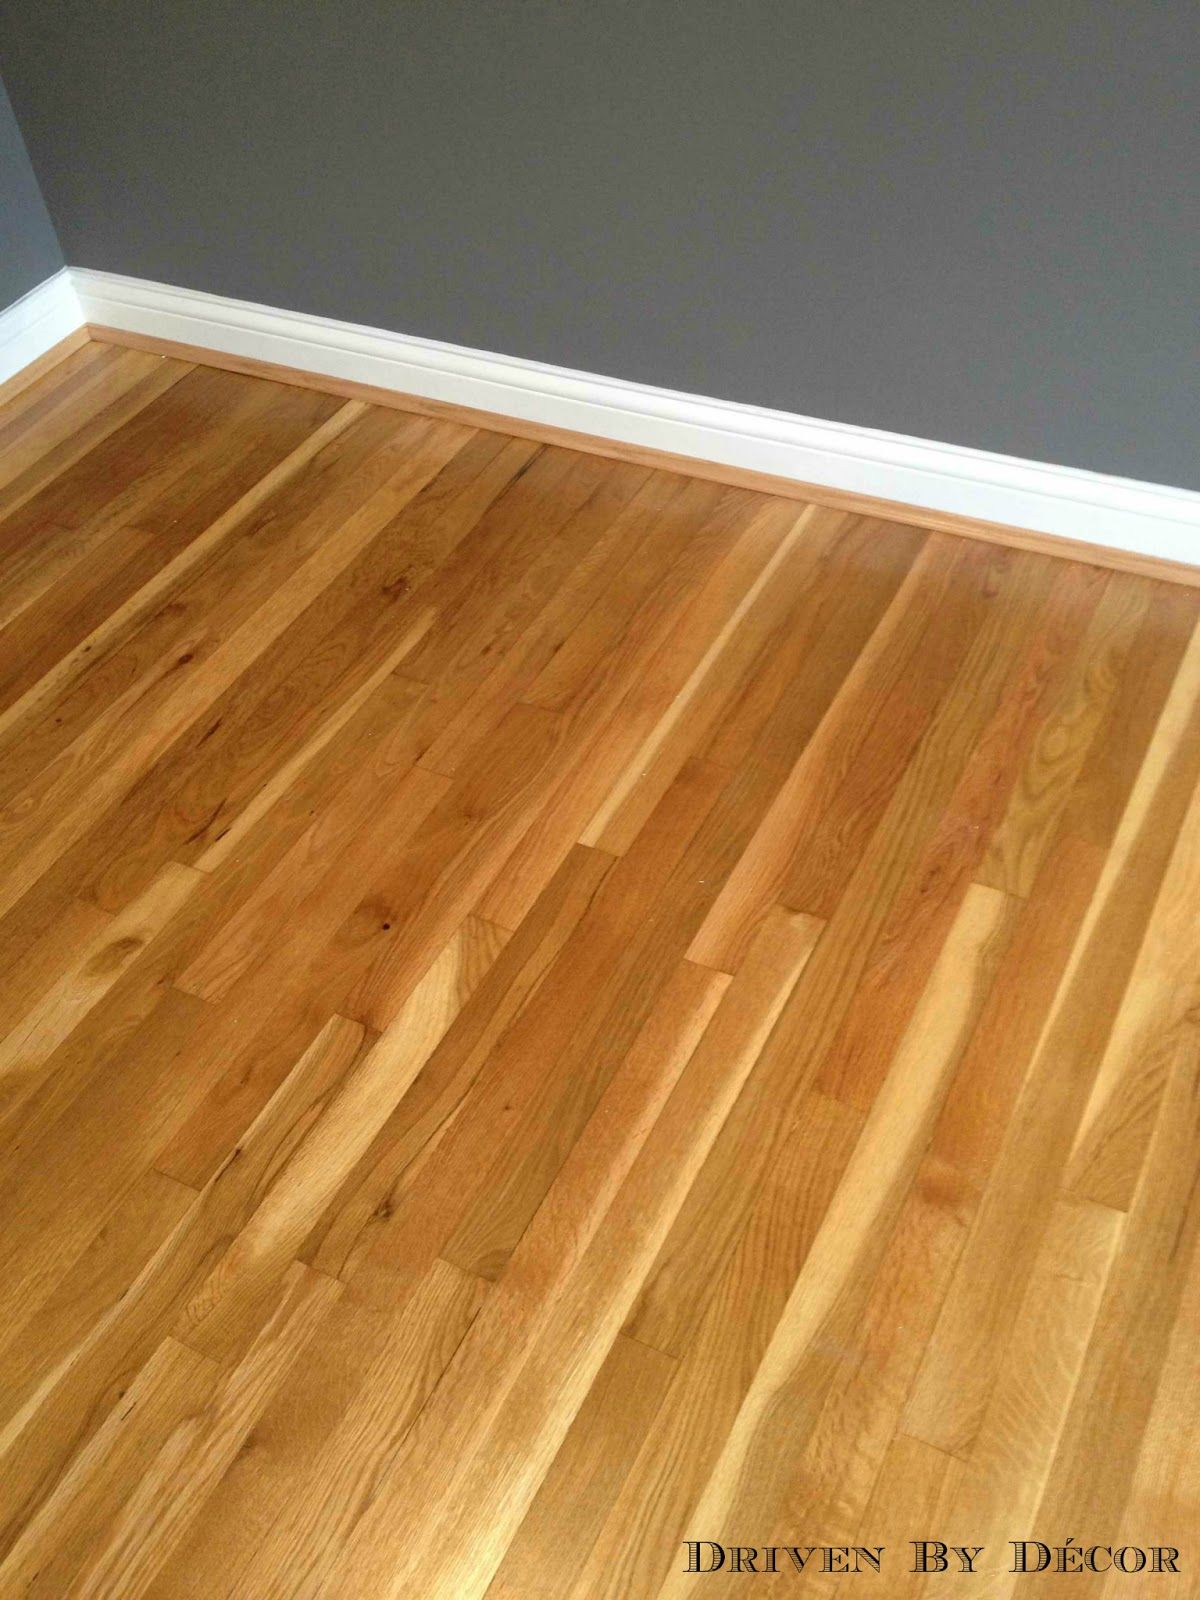 Water-based parquet lacquer (reviews) 54